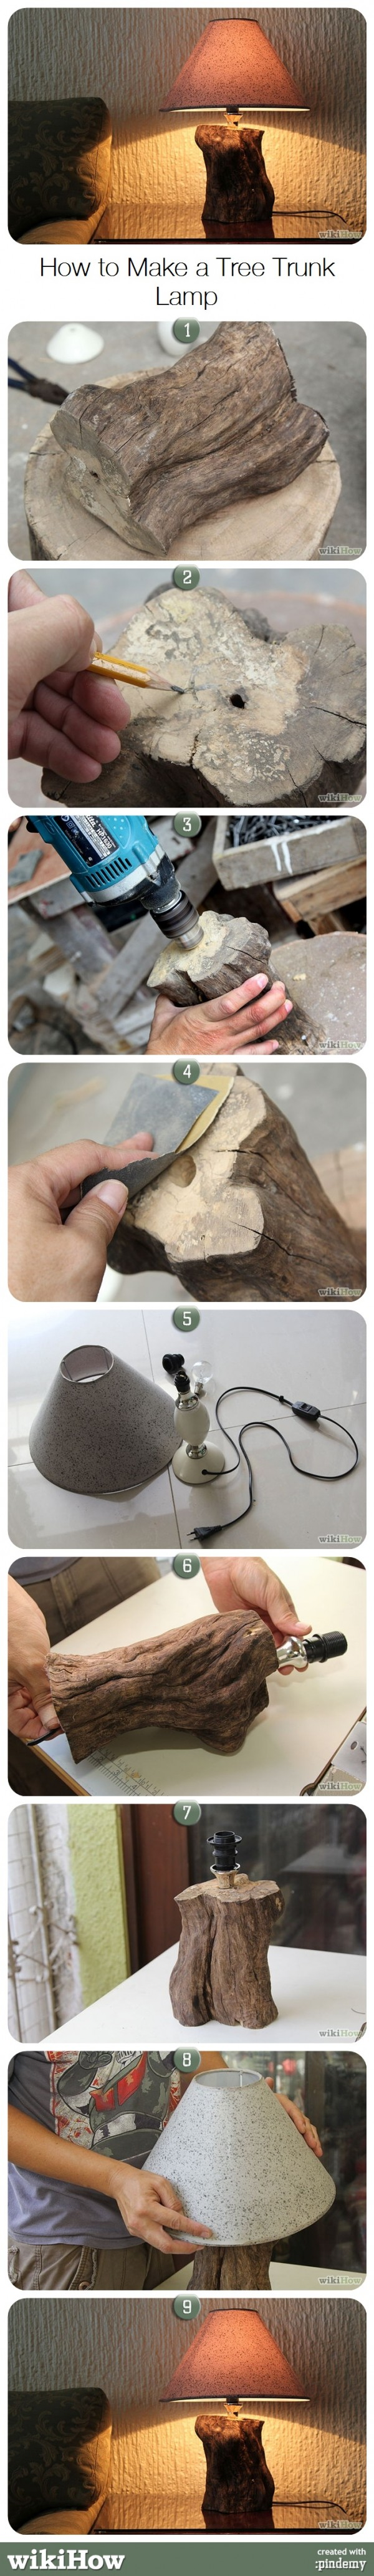 How to make a DIY tree trunk lamp